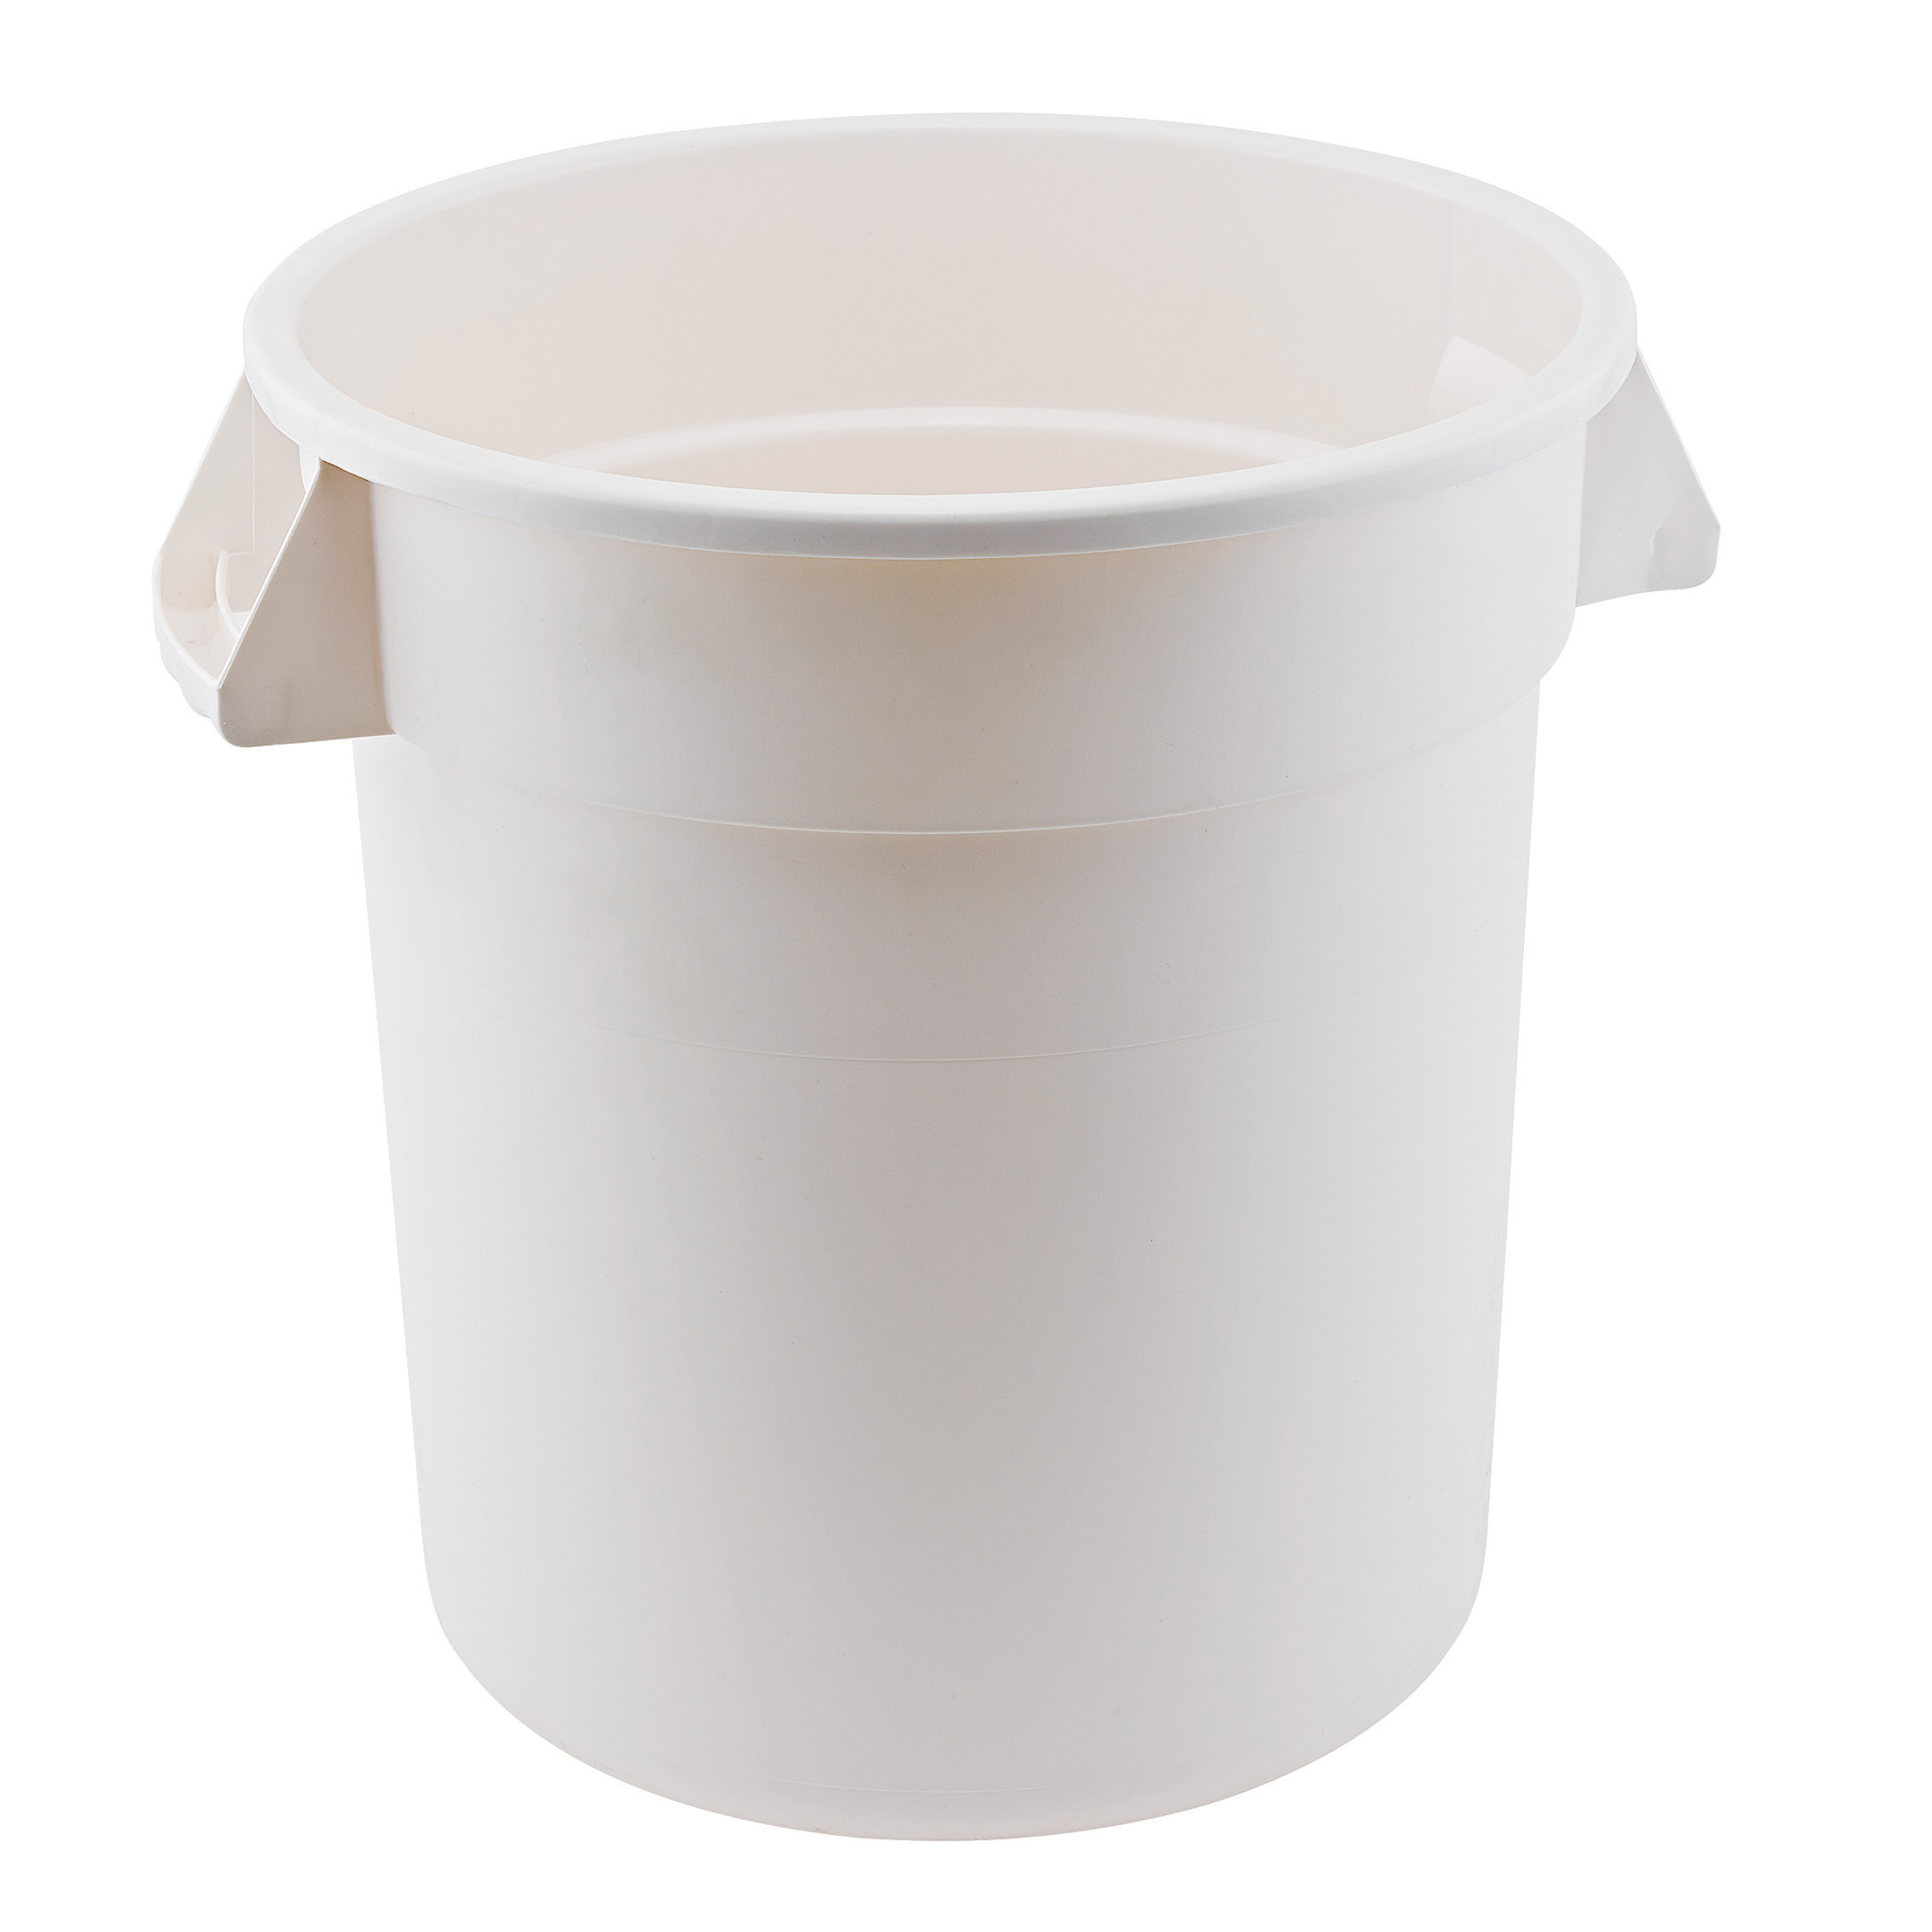 Winco FCW-10 trash can / container, commercial